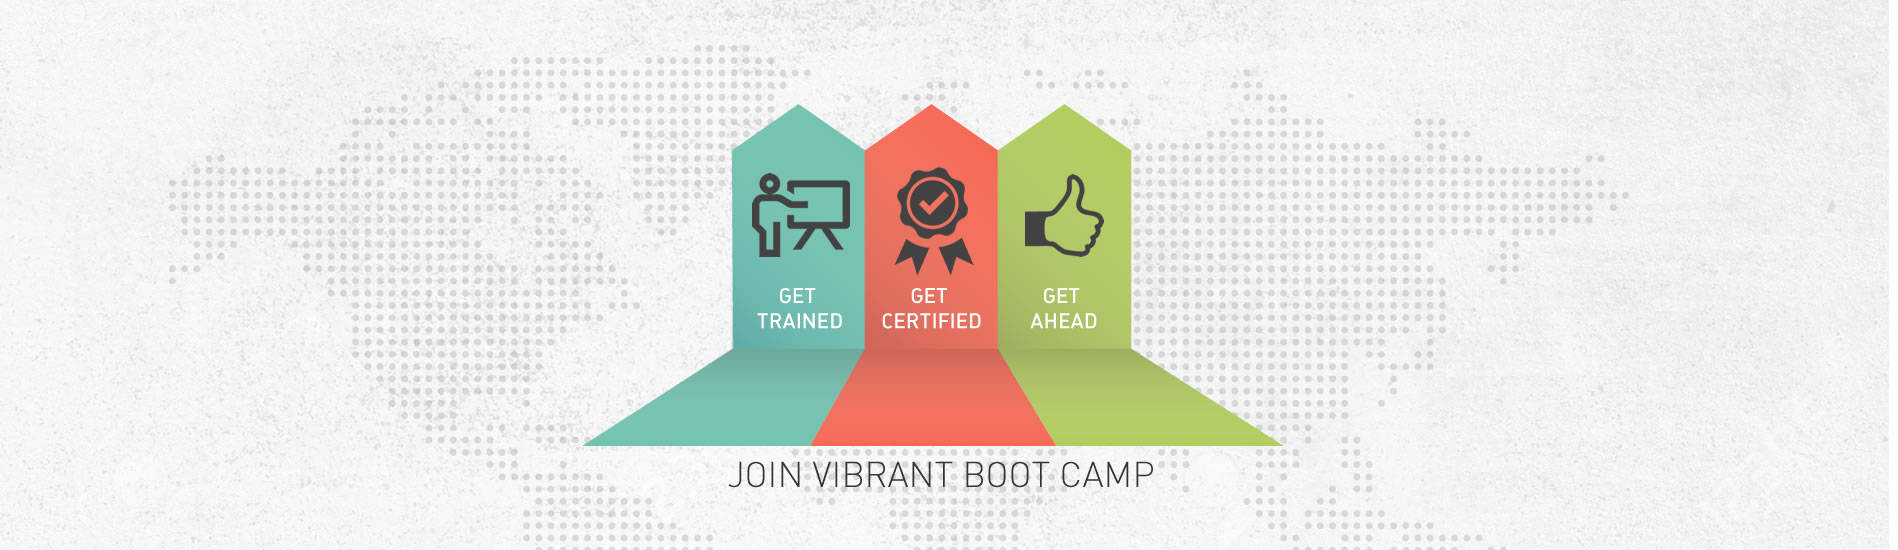 MCSE Boot camp, MCSE Azur Certification, MCSE 2016 training, MCSE Certification boot camp, MCSE Boot camp Training, MCSE Certifiation boot camp training, MCSE bootcamps, MCSE Azur Admin Boot camp, MCSE Cloud 2016 certification, MCSE Azure 2016 Training, MCSE 2016 Camp, MCSE upgrade Boot camp, MCSE Upgrade certtification, MCSE upgrade Training, MCSE Boot camp San Fracisco, MCSE boot camp San Mateo, MCSE Boot camp Maryland, MCSE bootcamp training, CCNA Boot camp, CCNA Certifiation, CCNA Training, CCNA Certfication Boot camp, CCNA Boot camp training, CCNA Certification boot camp training, MCSE CCNA combo Boot camp, MCSE CCNA Camp, MCSE CCNA Certification training camp, CCNAX Boot camp, CCNAX Certification, CCNAX training, CCNAX boot camp training, CCNAX Certification Training, CCNAX Certification boot camp training, AWS Boot Camp, AWS Certification, AWS Training, Amazon Web Service Boot Camp, AWS Sysops Administrator Boot Camp, cloud training, cloud certification, cloud service training, cloud security, cloud boot camps